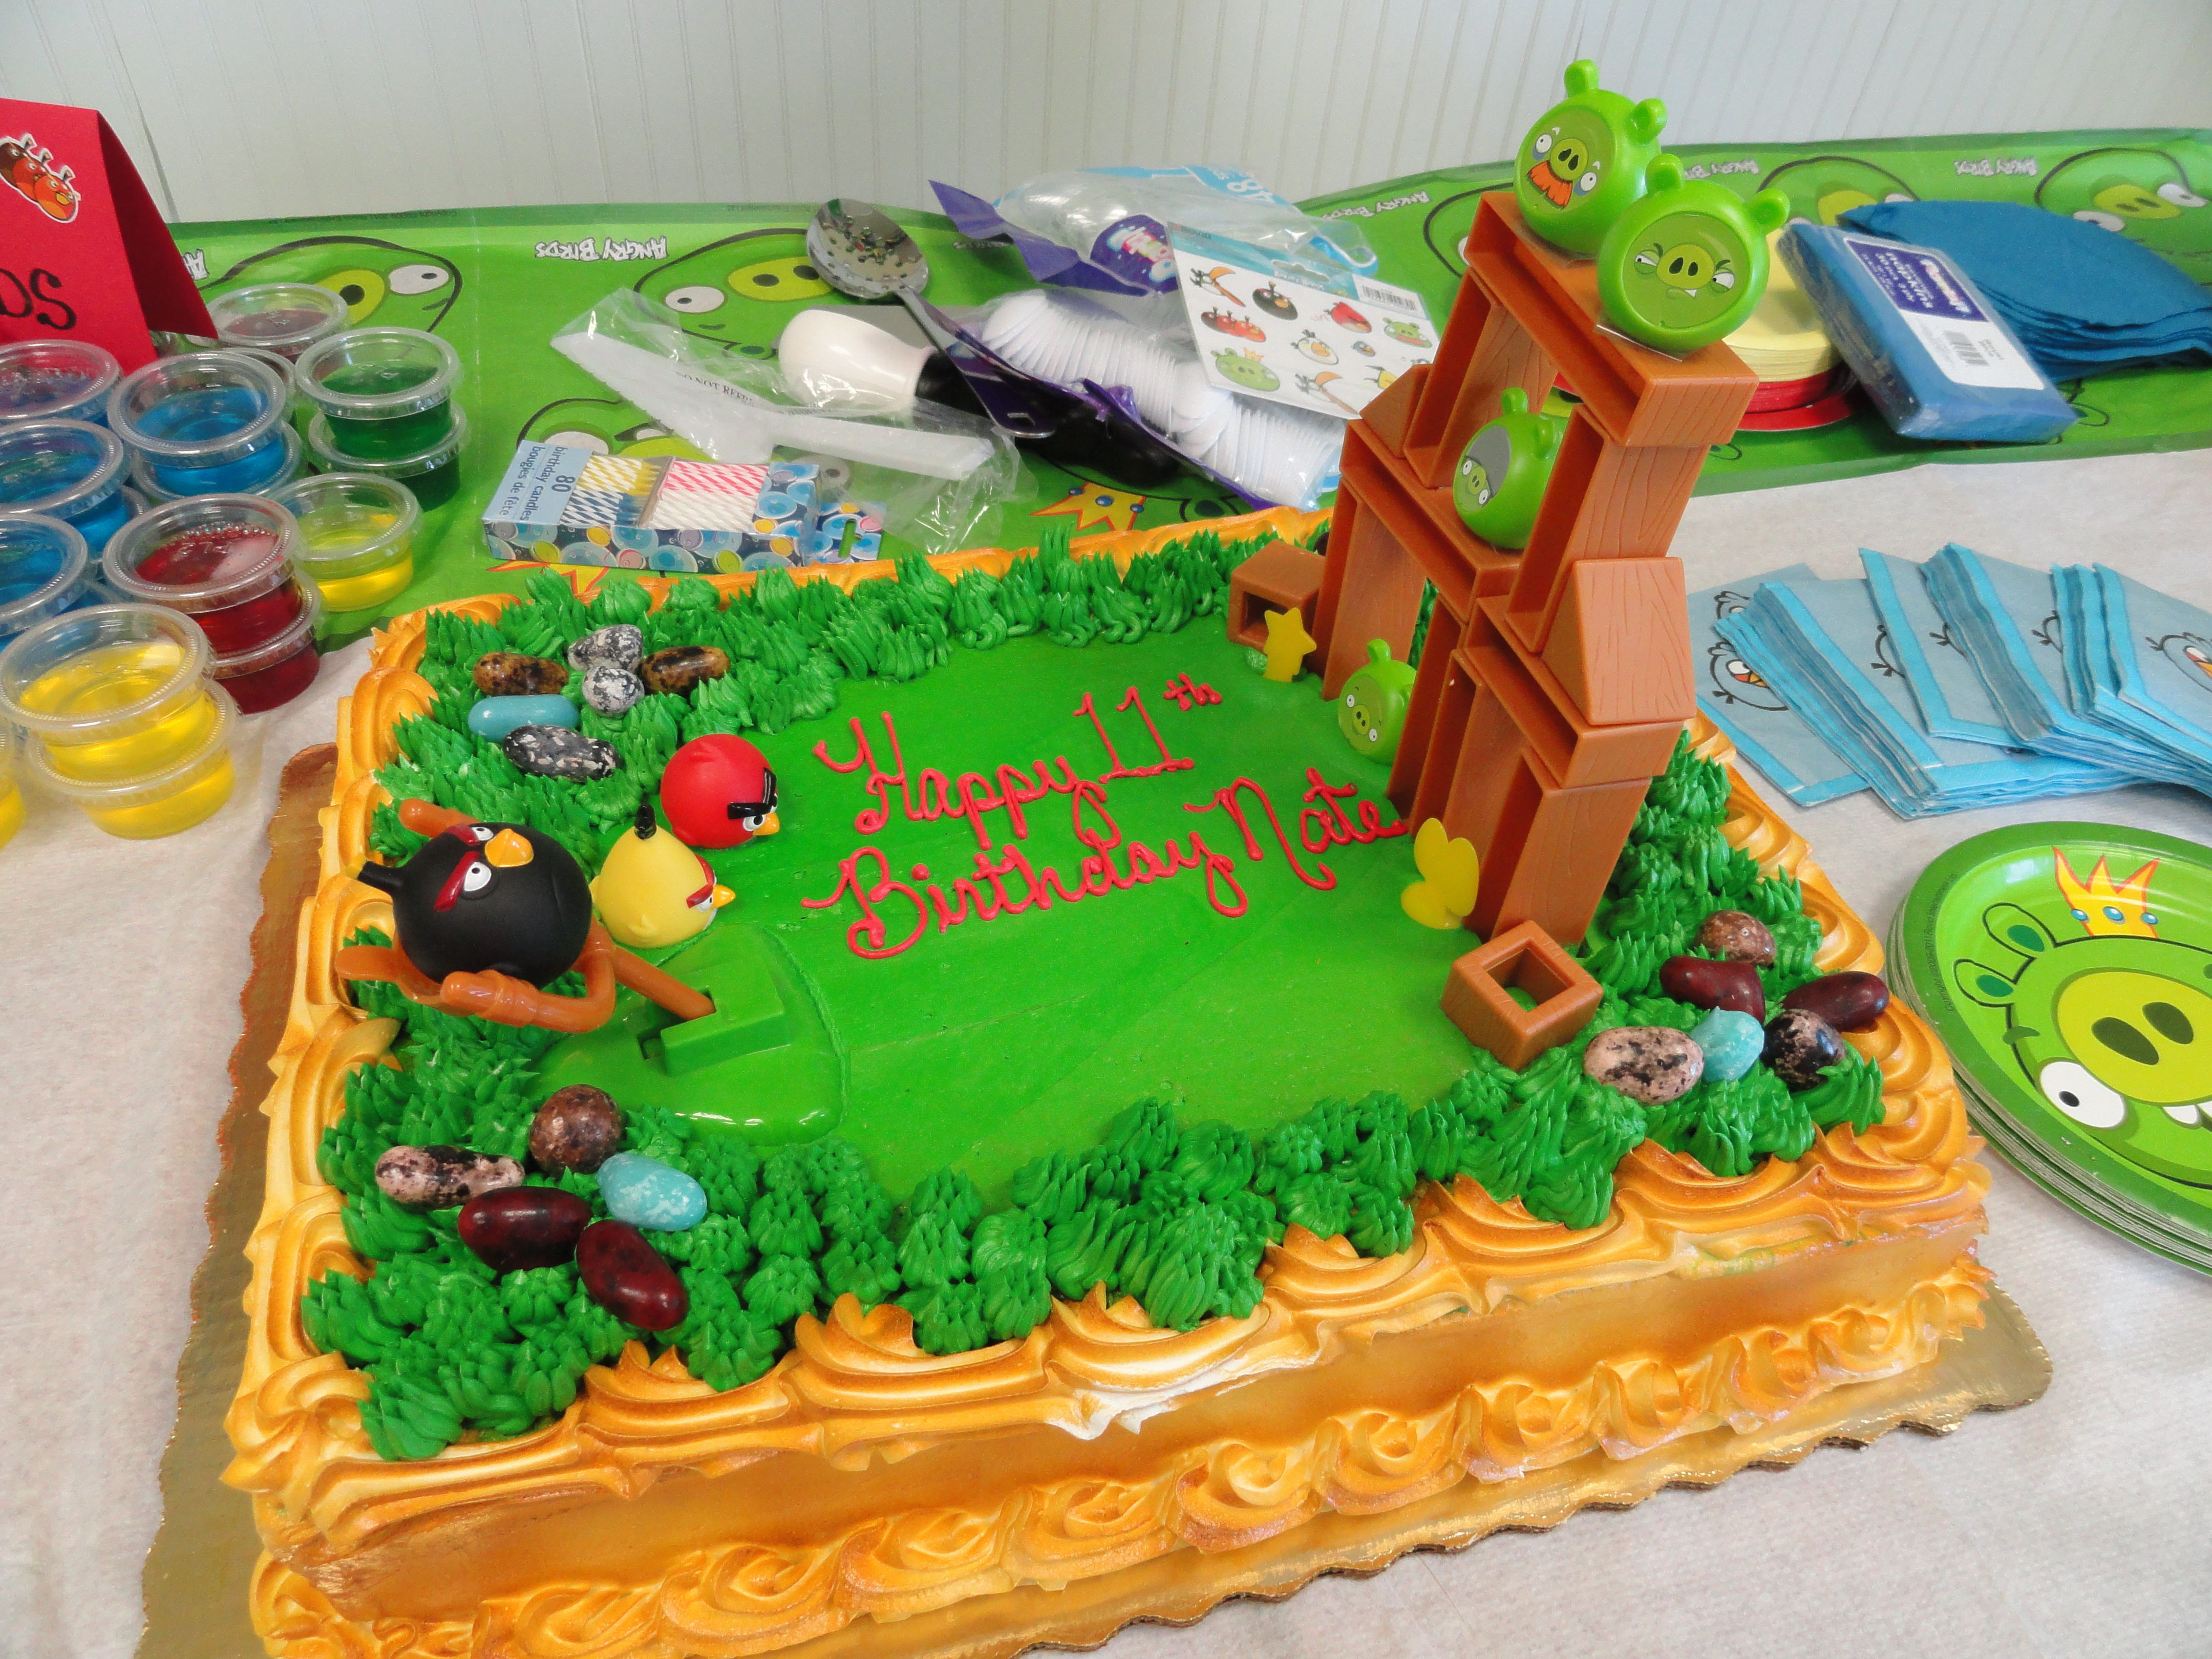 I Ordered The Cake From Publix 1 2 Sheet Asked Them To Make It Grassy They Added Candy Rocks Bought Angry Birds Game Target